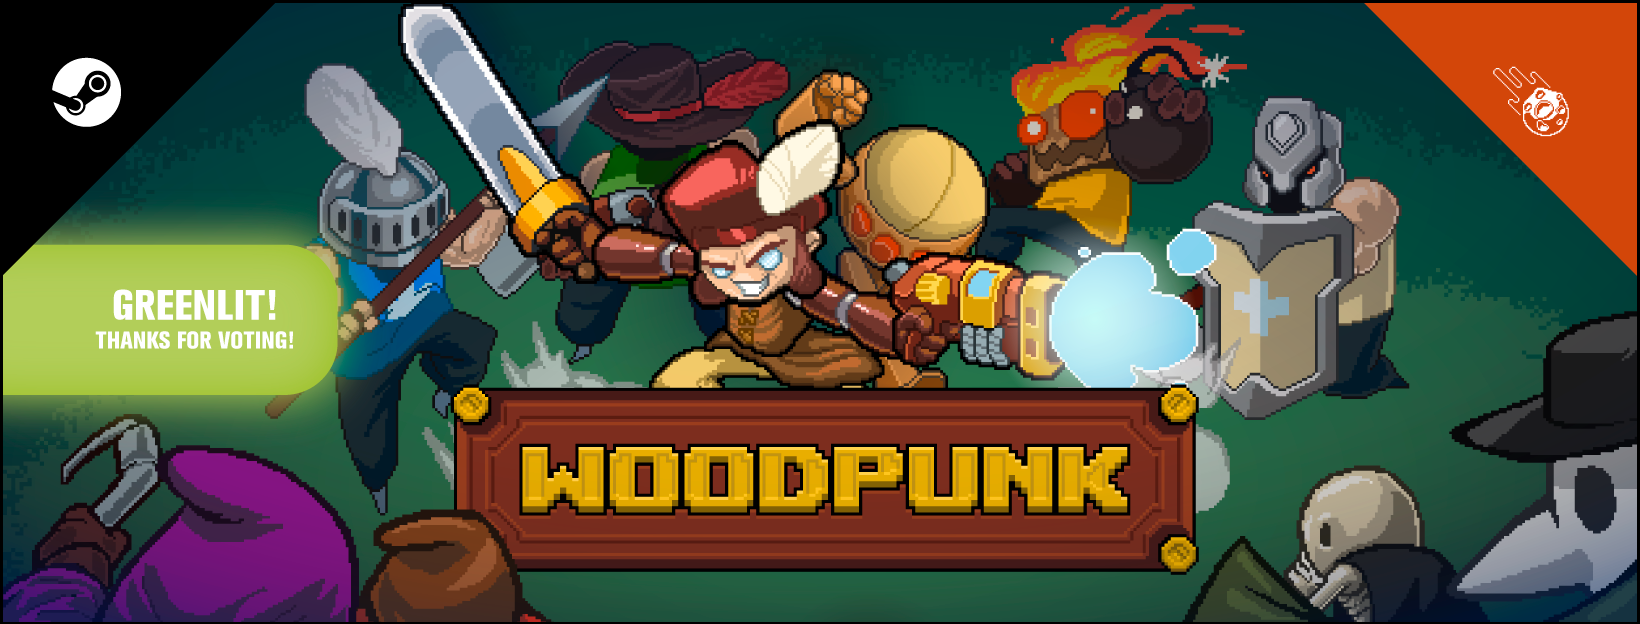 Woodpunk banner (cropped - facebook)